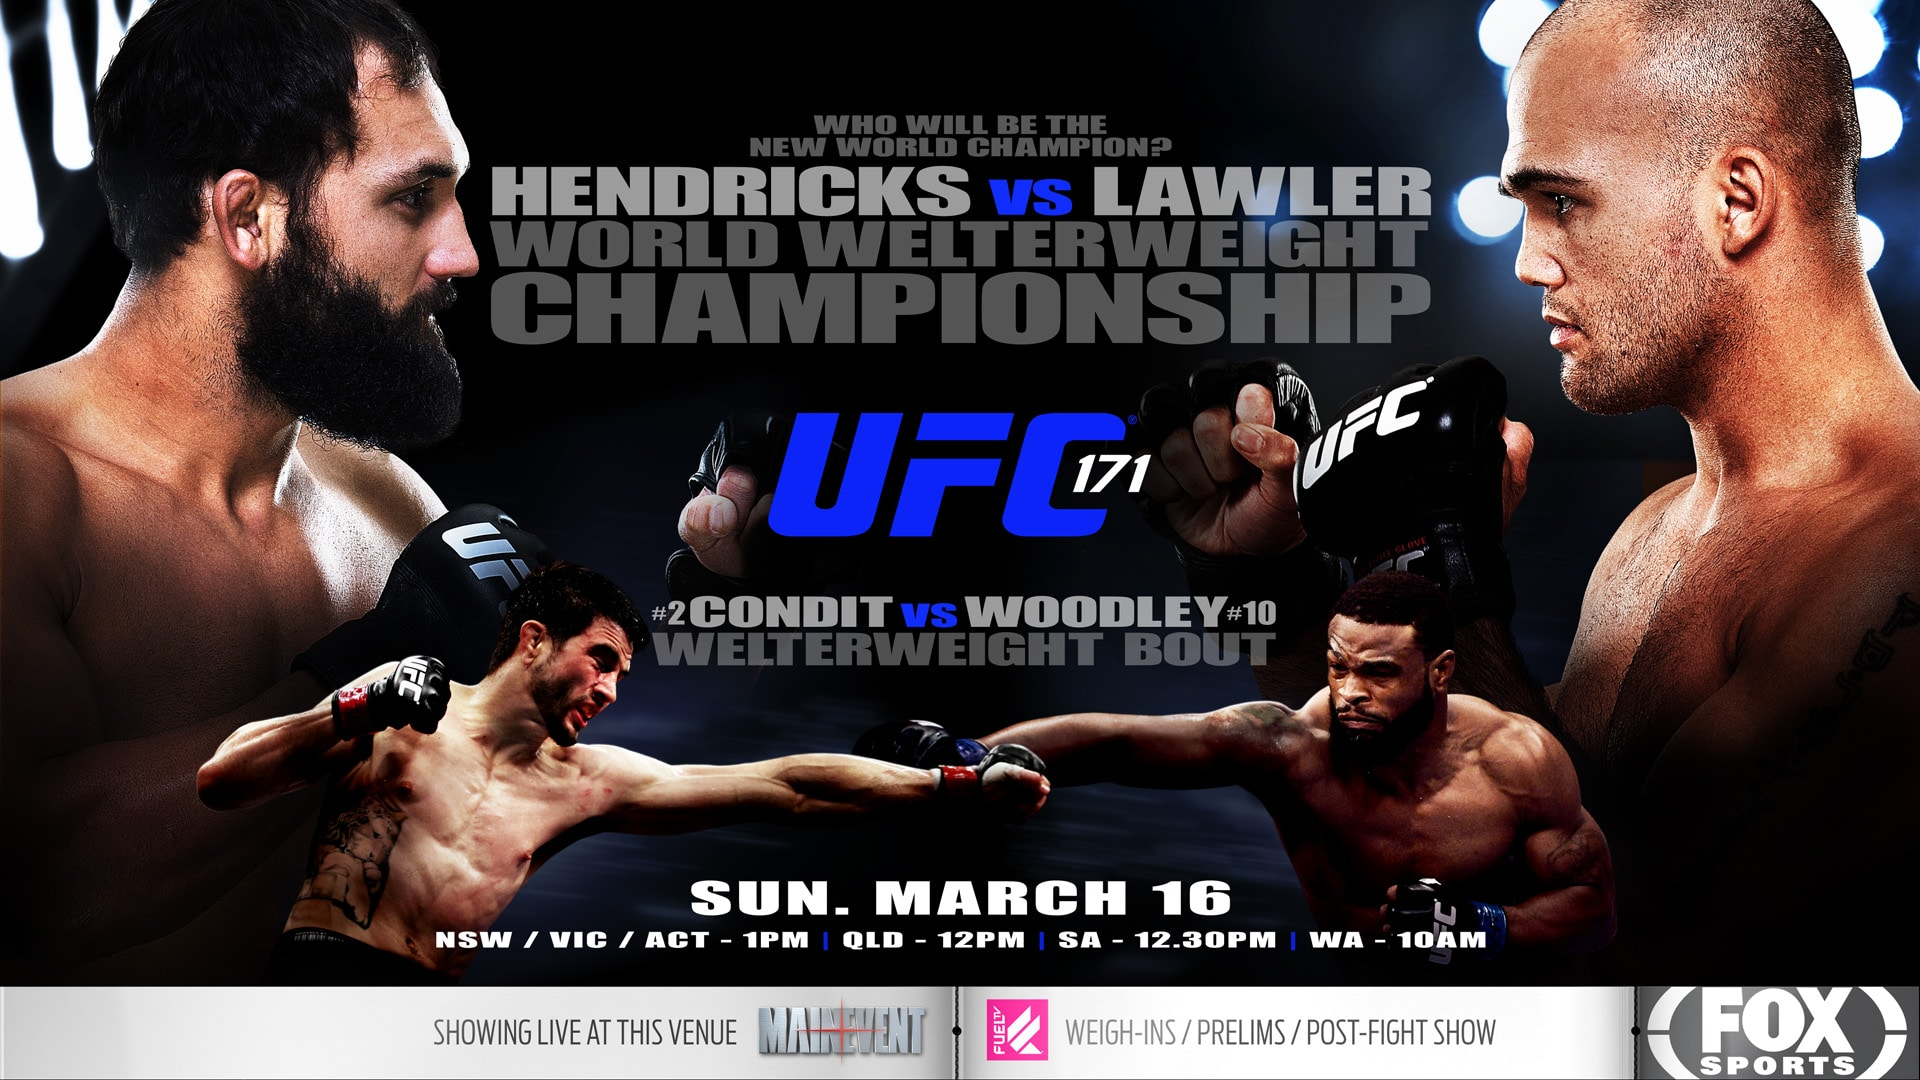 UFC 171 Screened live in the Sports Bar at Westwater Hotel.  UFC 171 Screene...